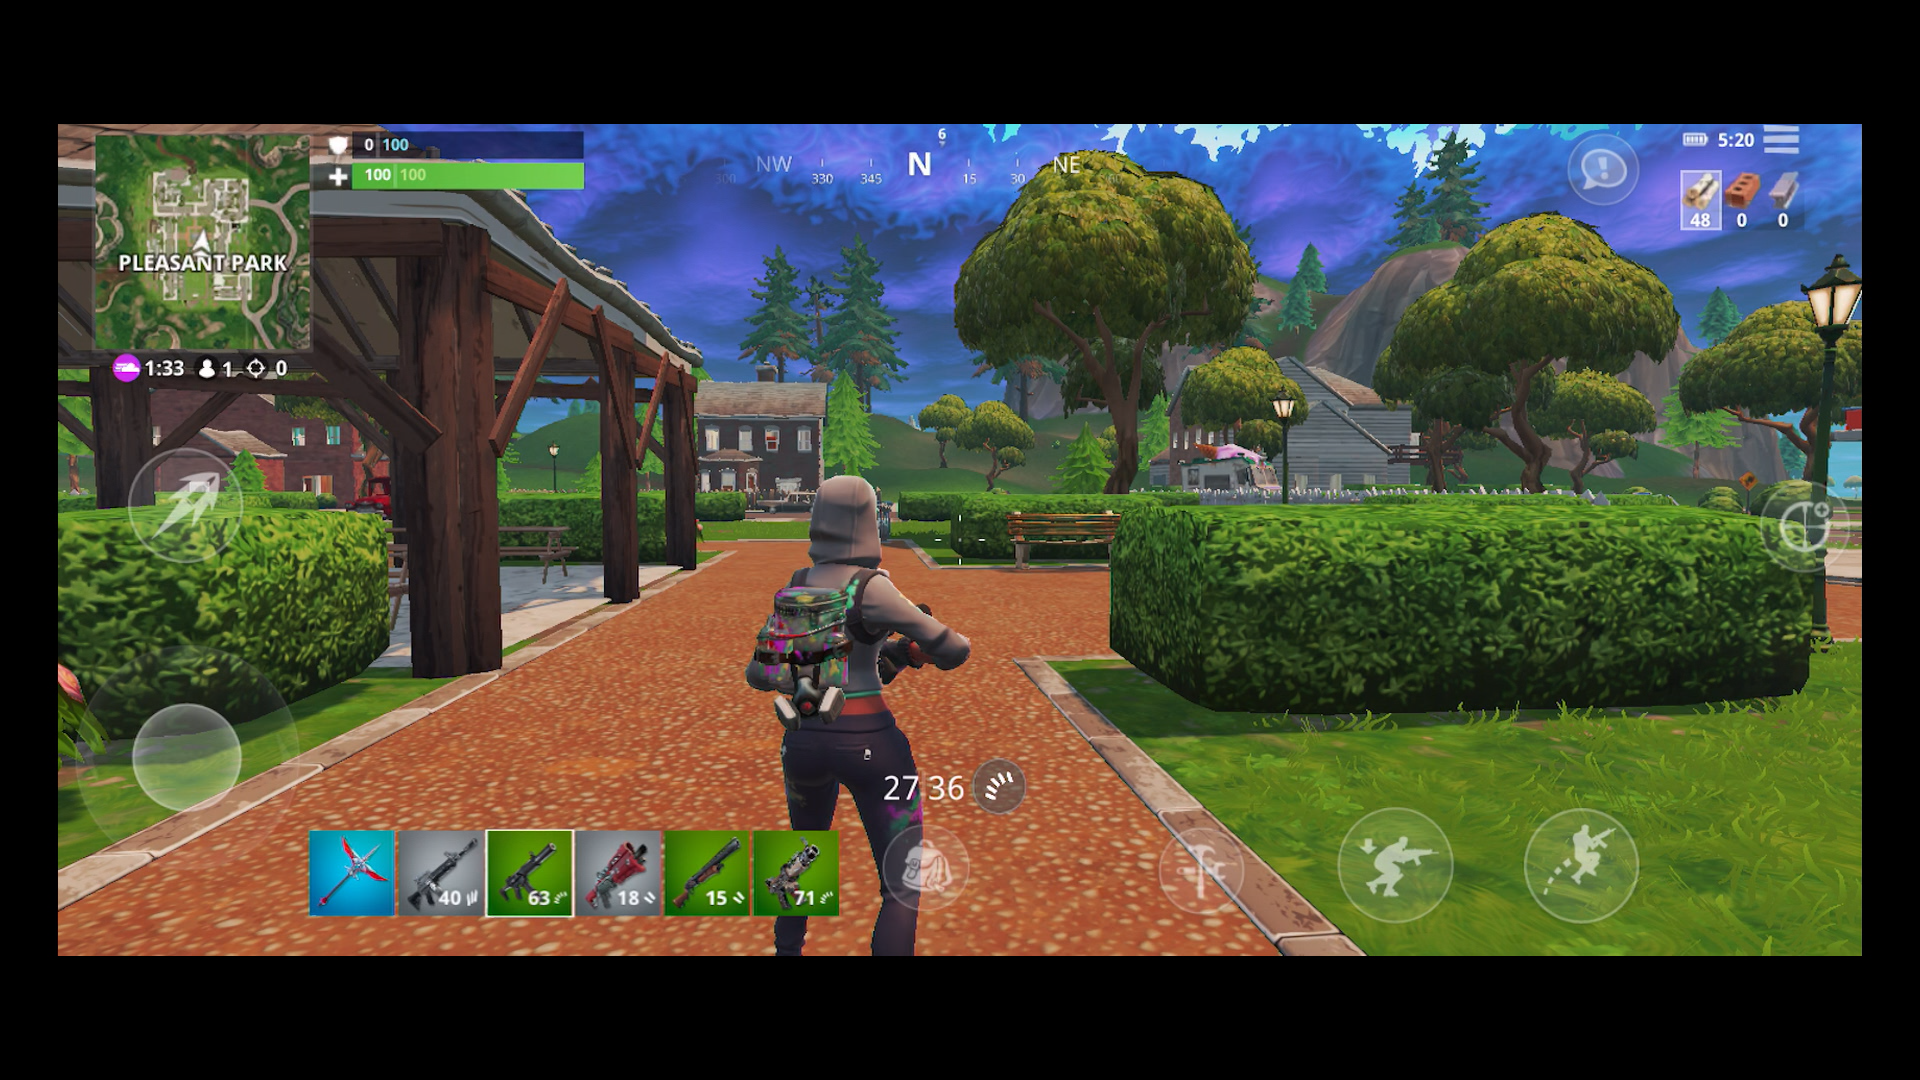 Fortnite Mobile game